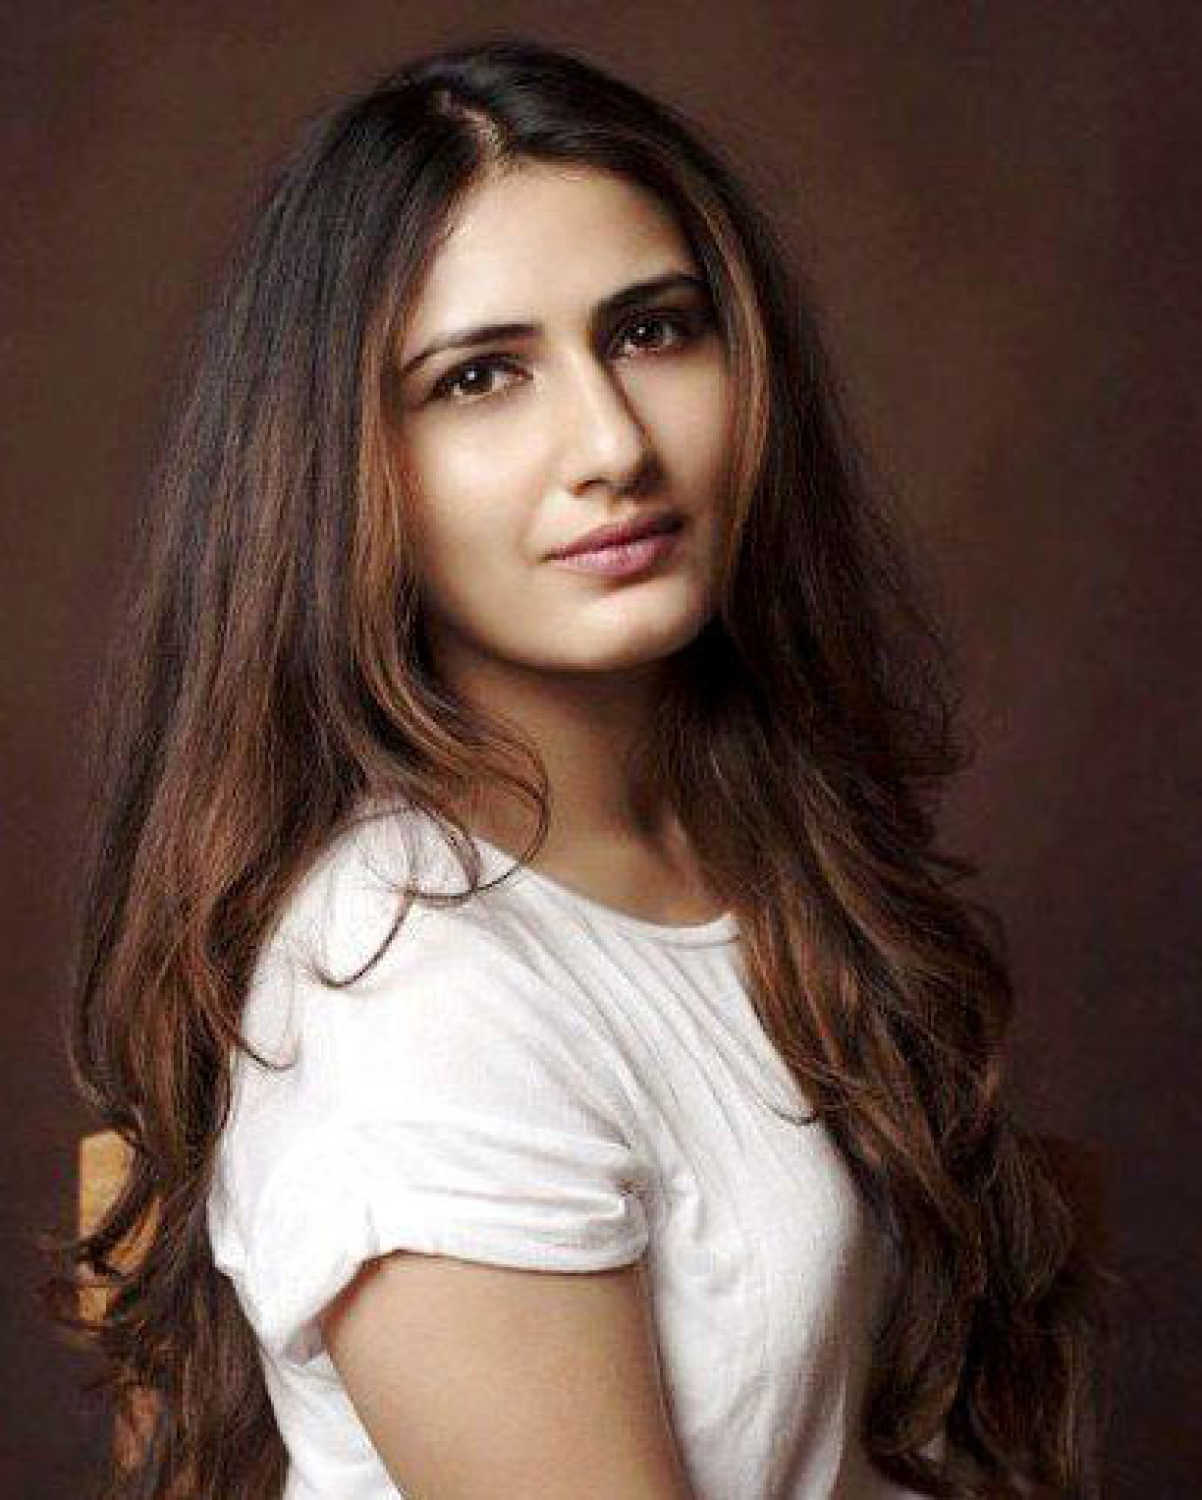 Fatima Sana Shaikh Age, Movies, Height, Biography, Husband, Image(photos), Parents, Religion, Birthday, Net Worth, Education, News, Instagram, Wiki, Facebook, Imdb, Twitter (14)